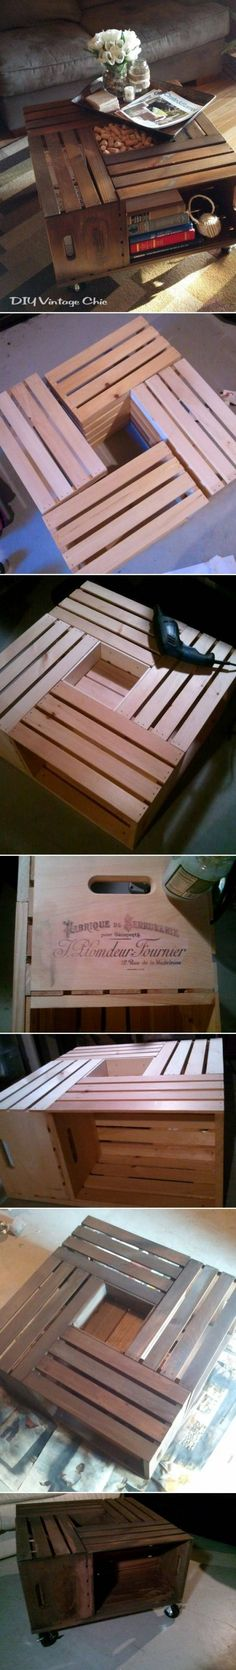 How to make custom designer Wine table with shipping crates step by step DIY tutorial instructions 512x3624 How to make custom designer Wine...